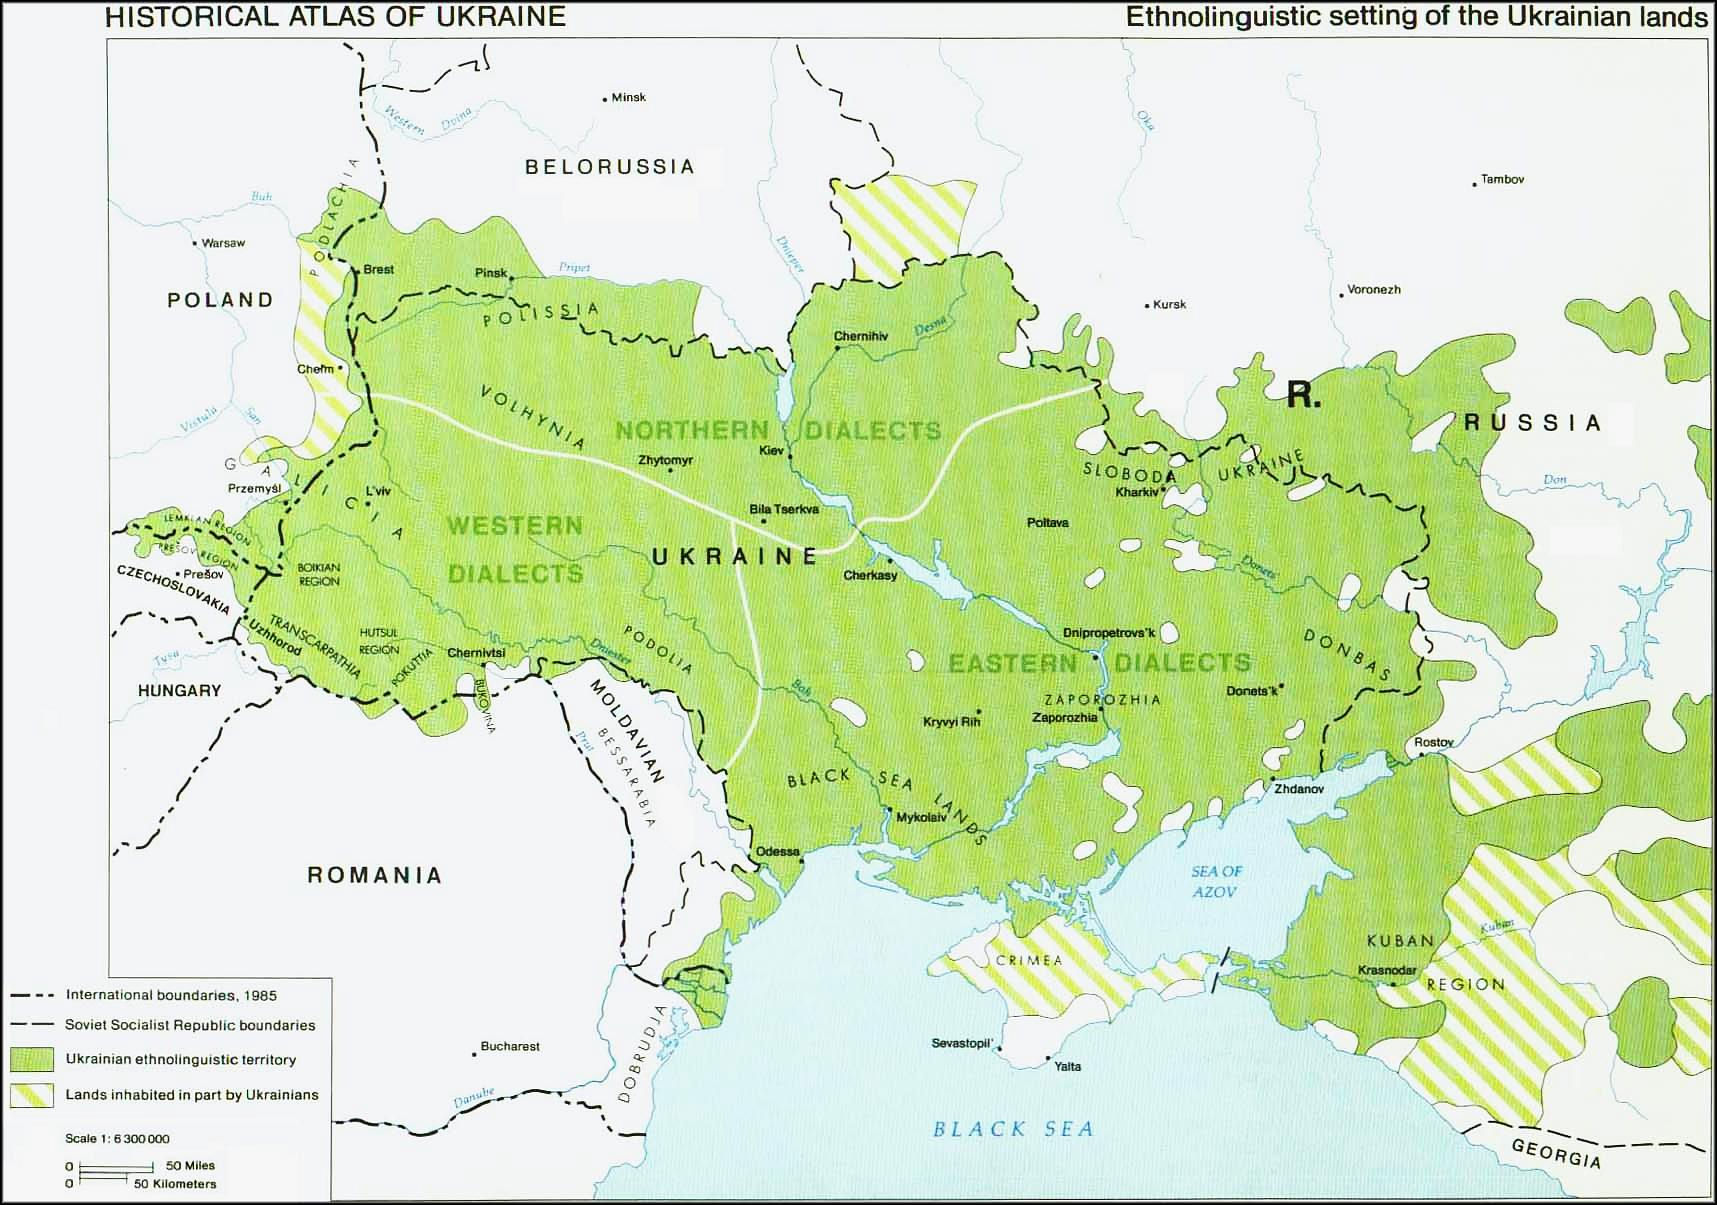 http://www.globalsecurity.org/military/world/ukraine/images/map-language.jpg